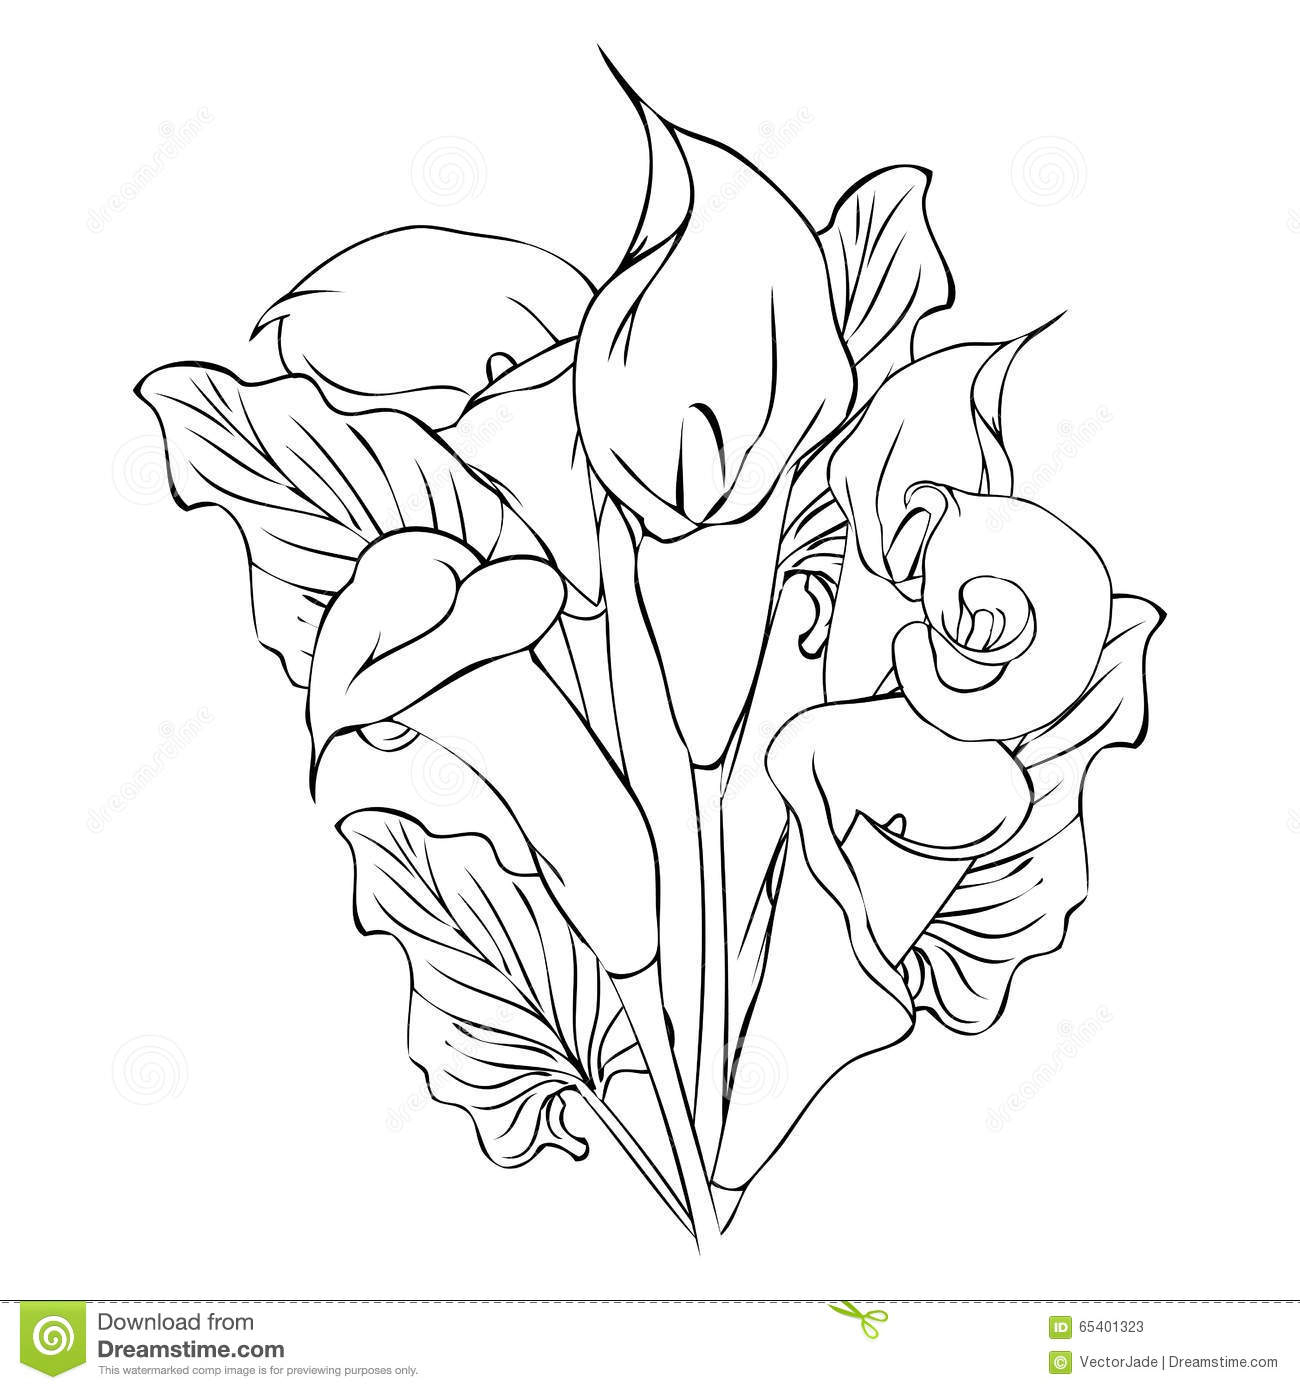 calla lily outline outline flower plant lily calla lilies draw a canna calla outline lily